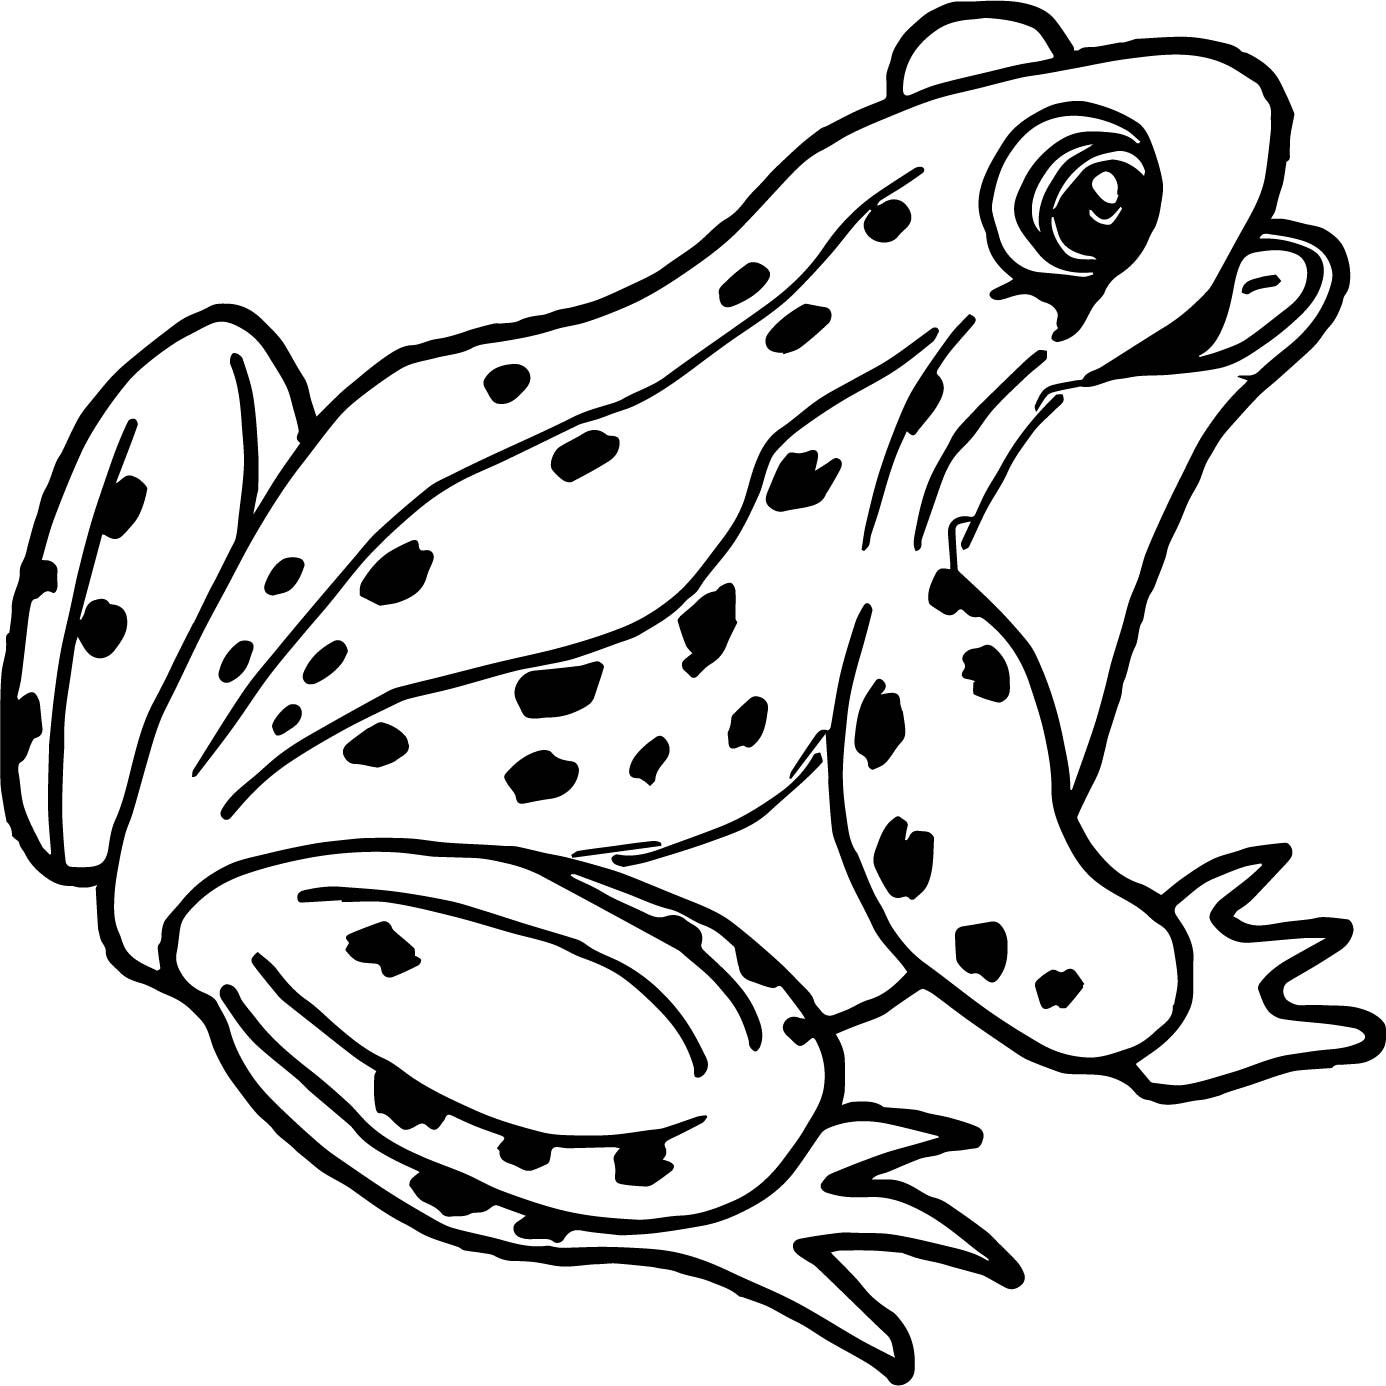 frog to color frog coloring pages kidsuki frog to color